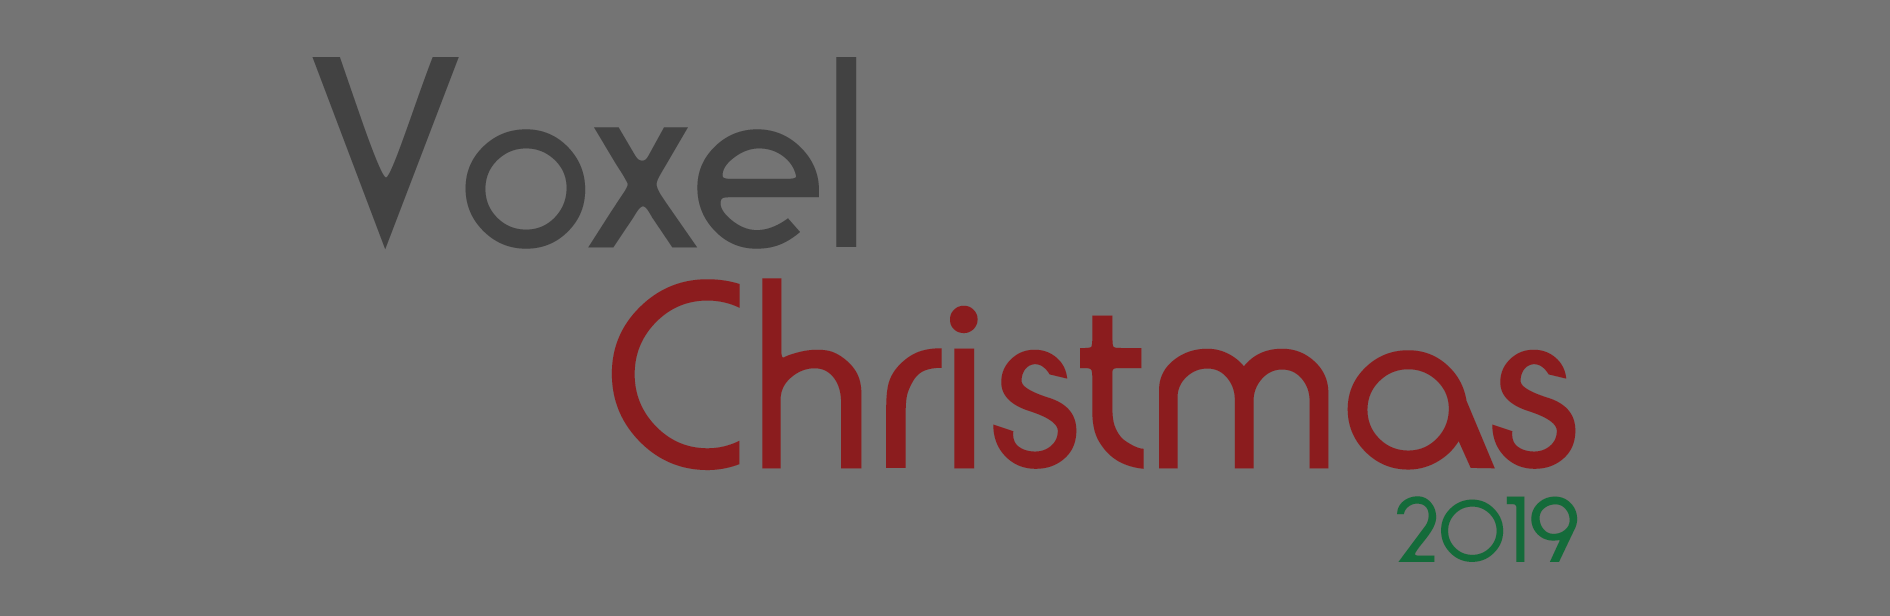 Voxel Christmas